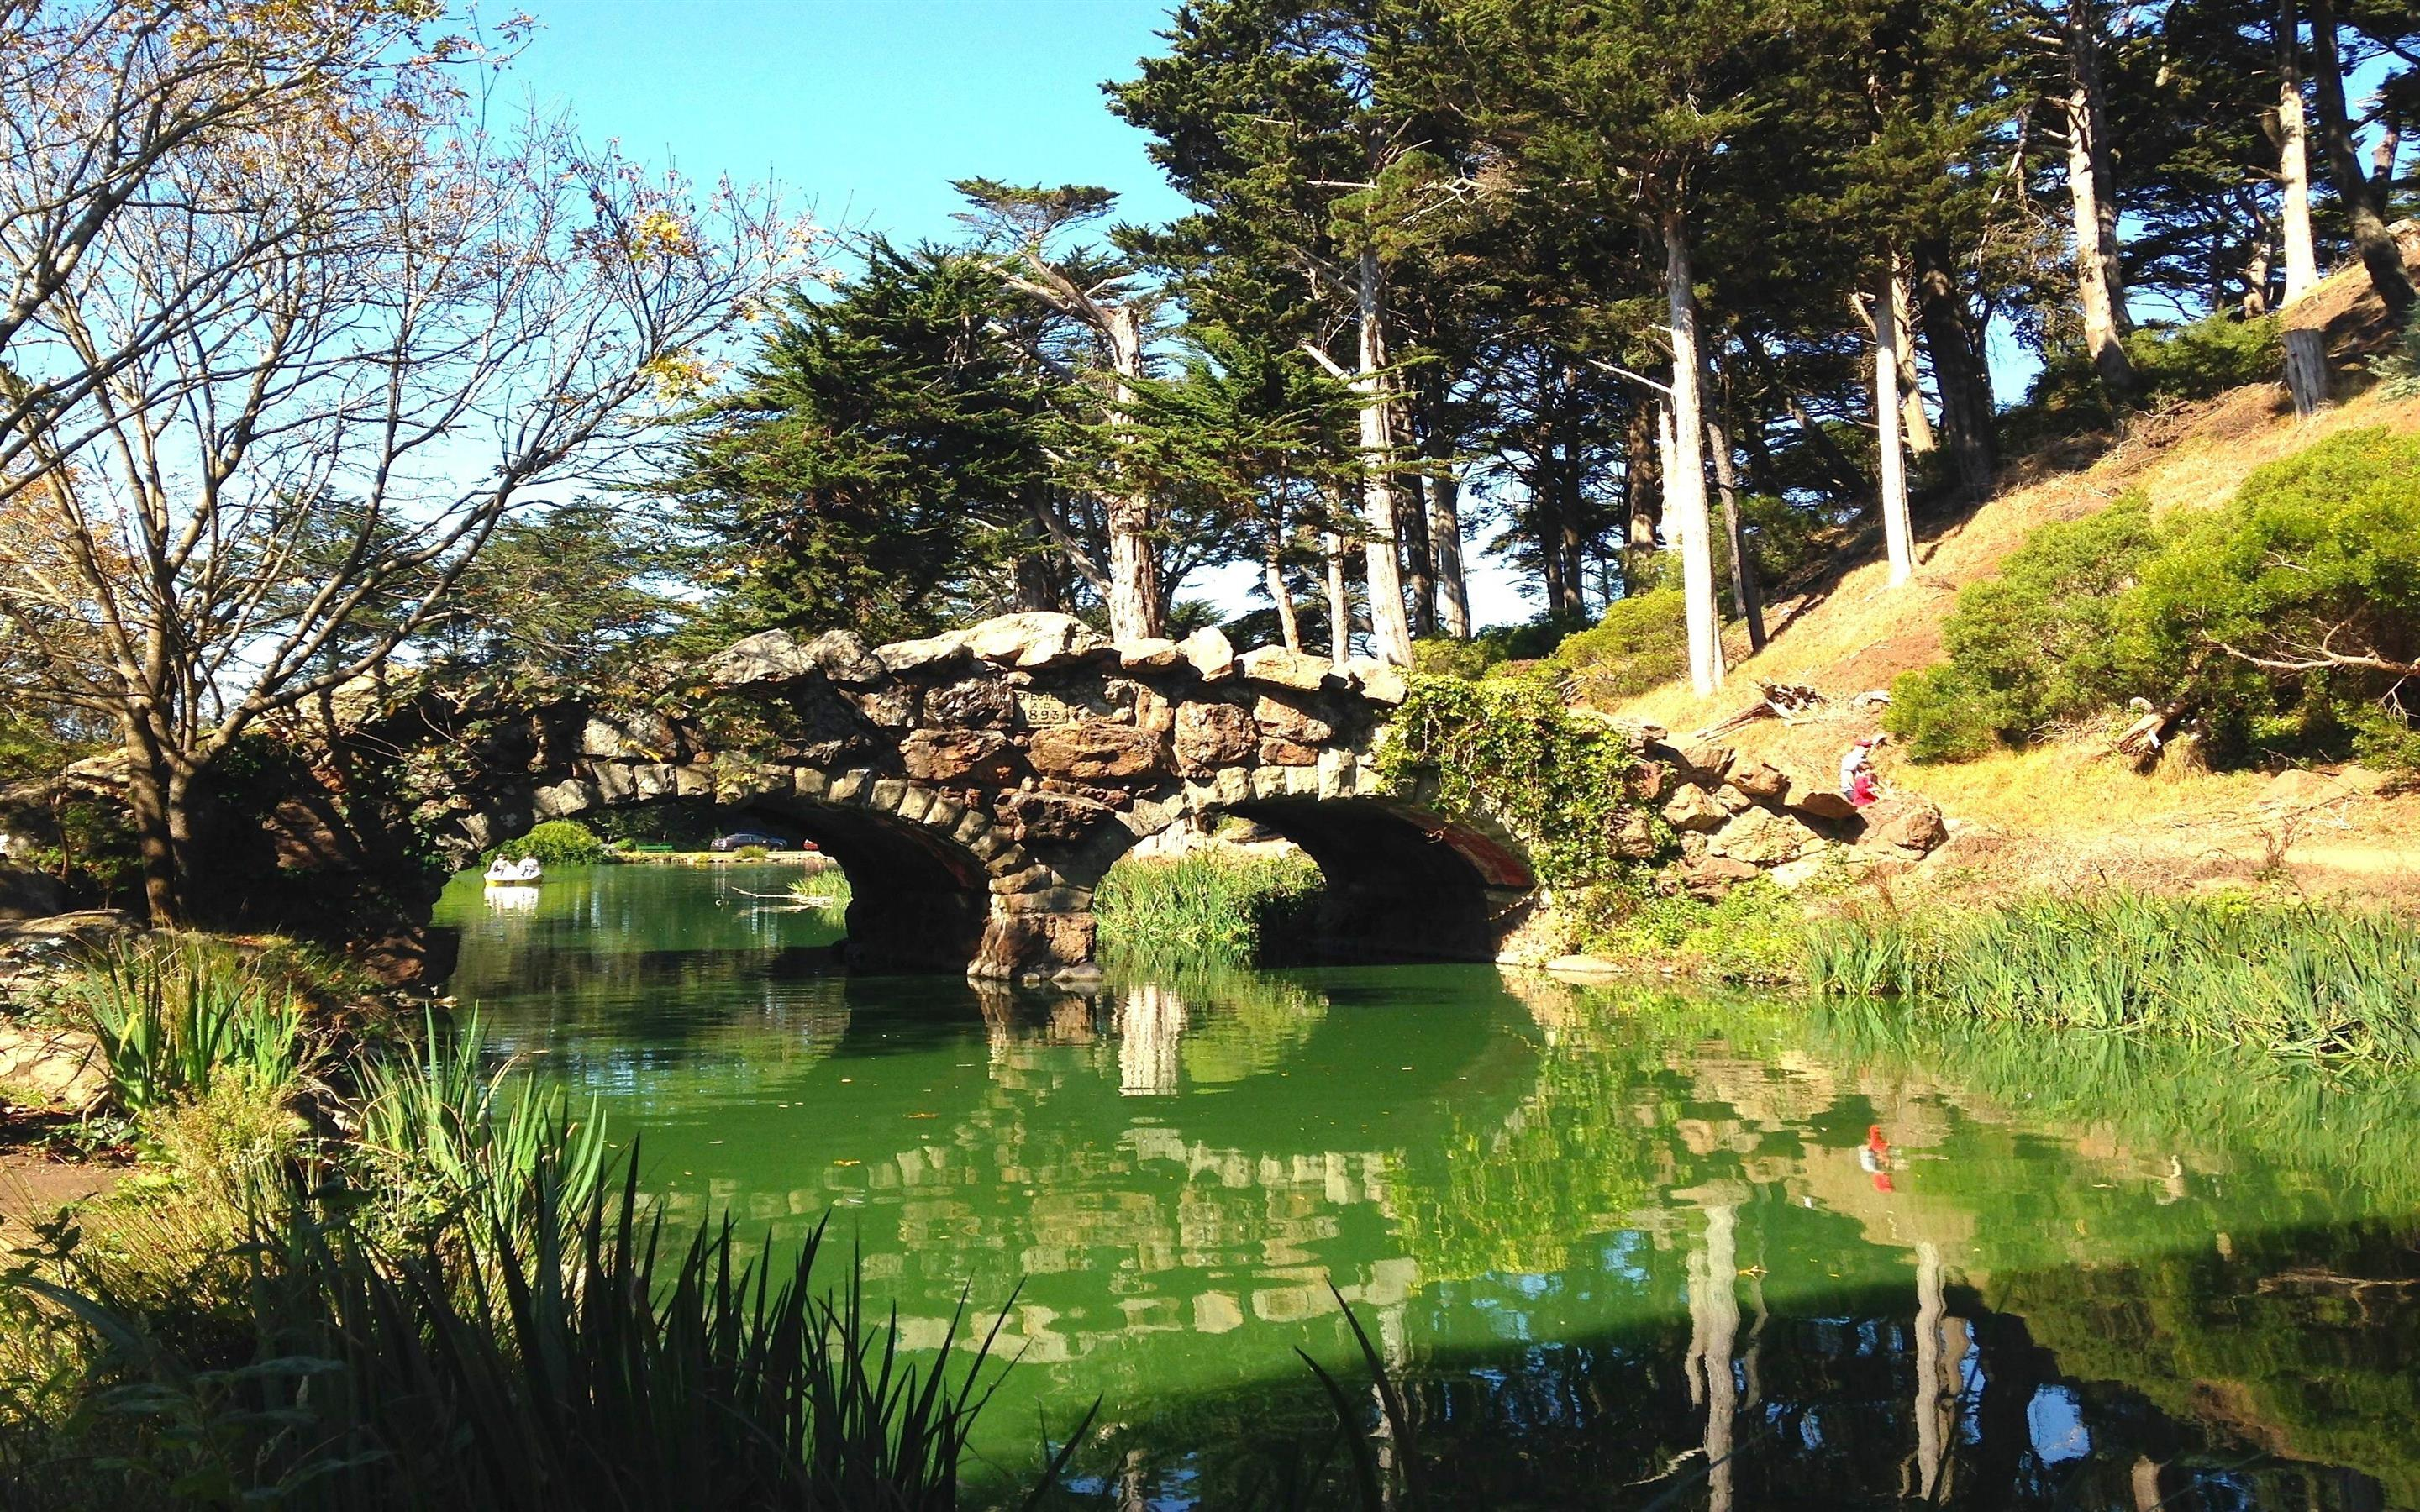 2880x1800 Beautiful Travel Place Golden Gate Park Park in San Francisco California Photo